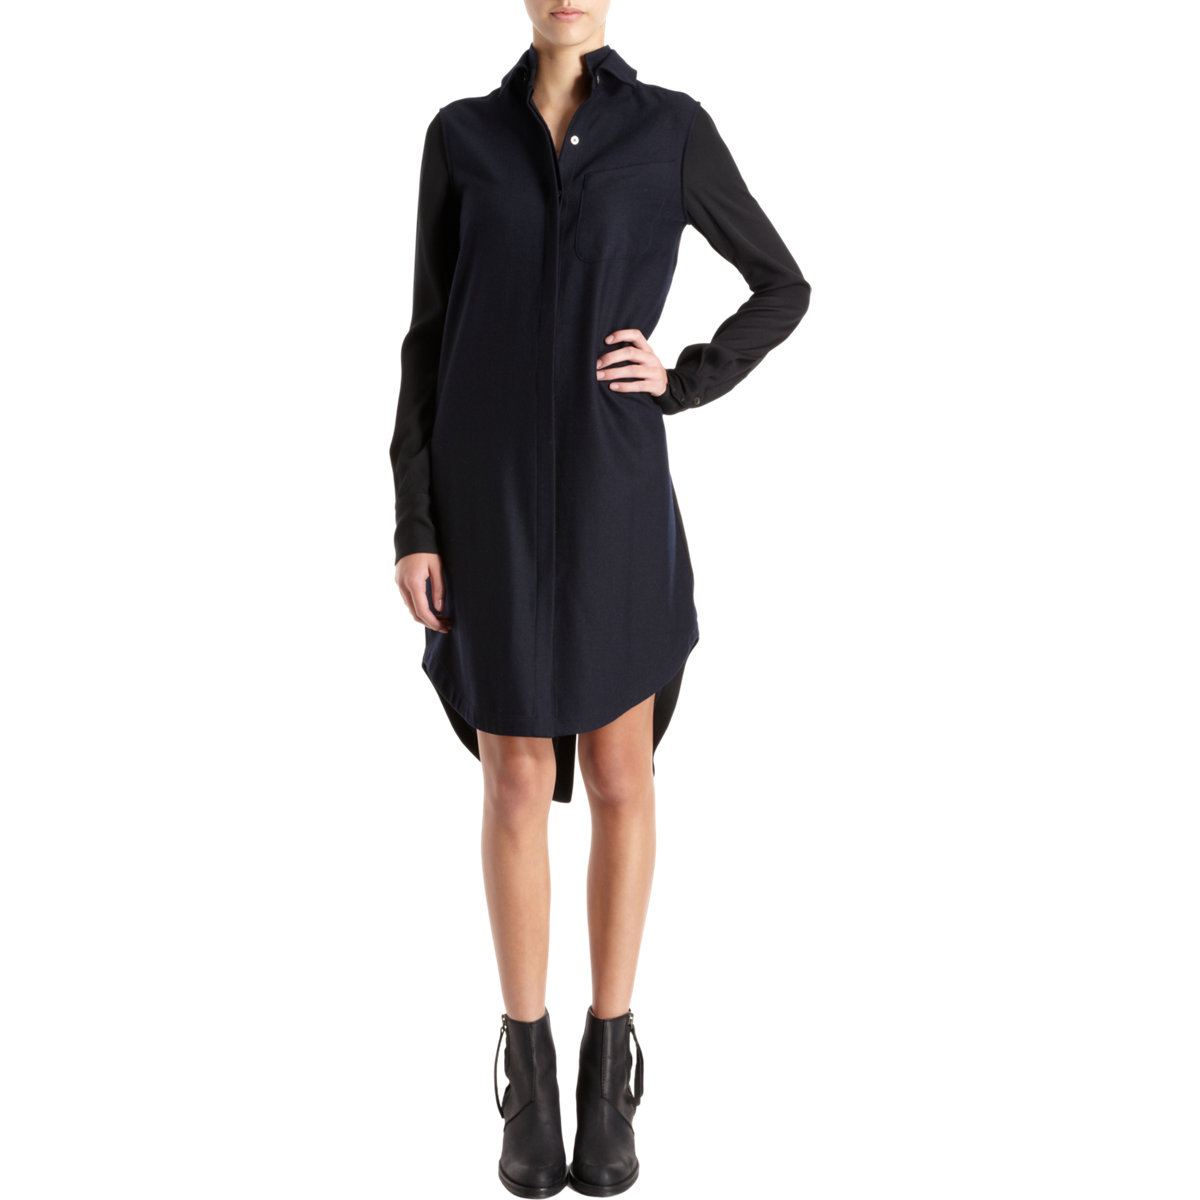 10 crosby derek lam double collar shirt dress in black for Derek lam 10 crosby shirt dress